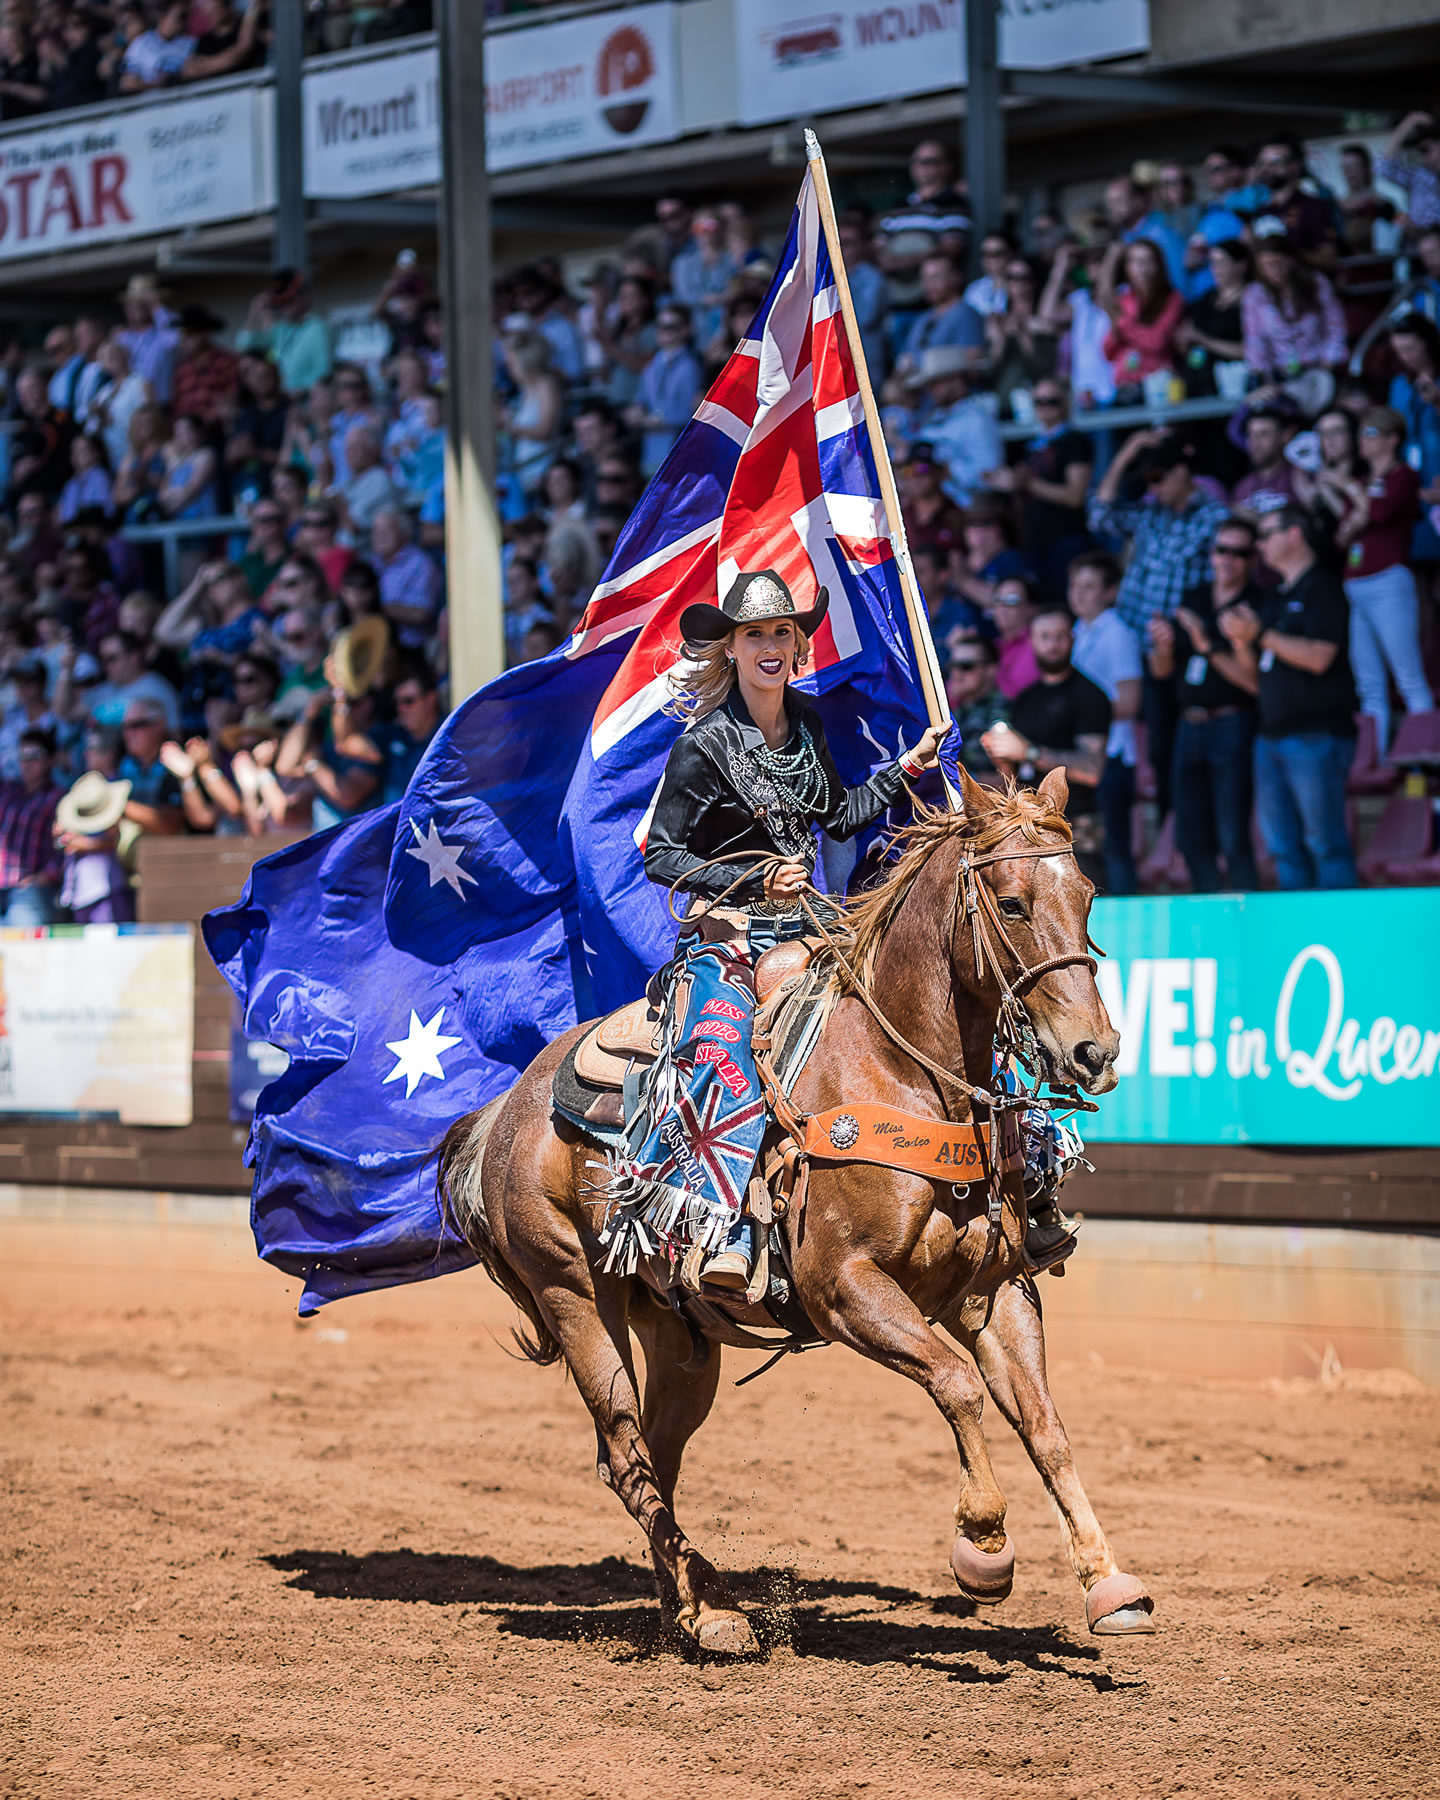 Thursday 8th Mount Isa Rodeo